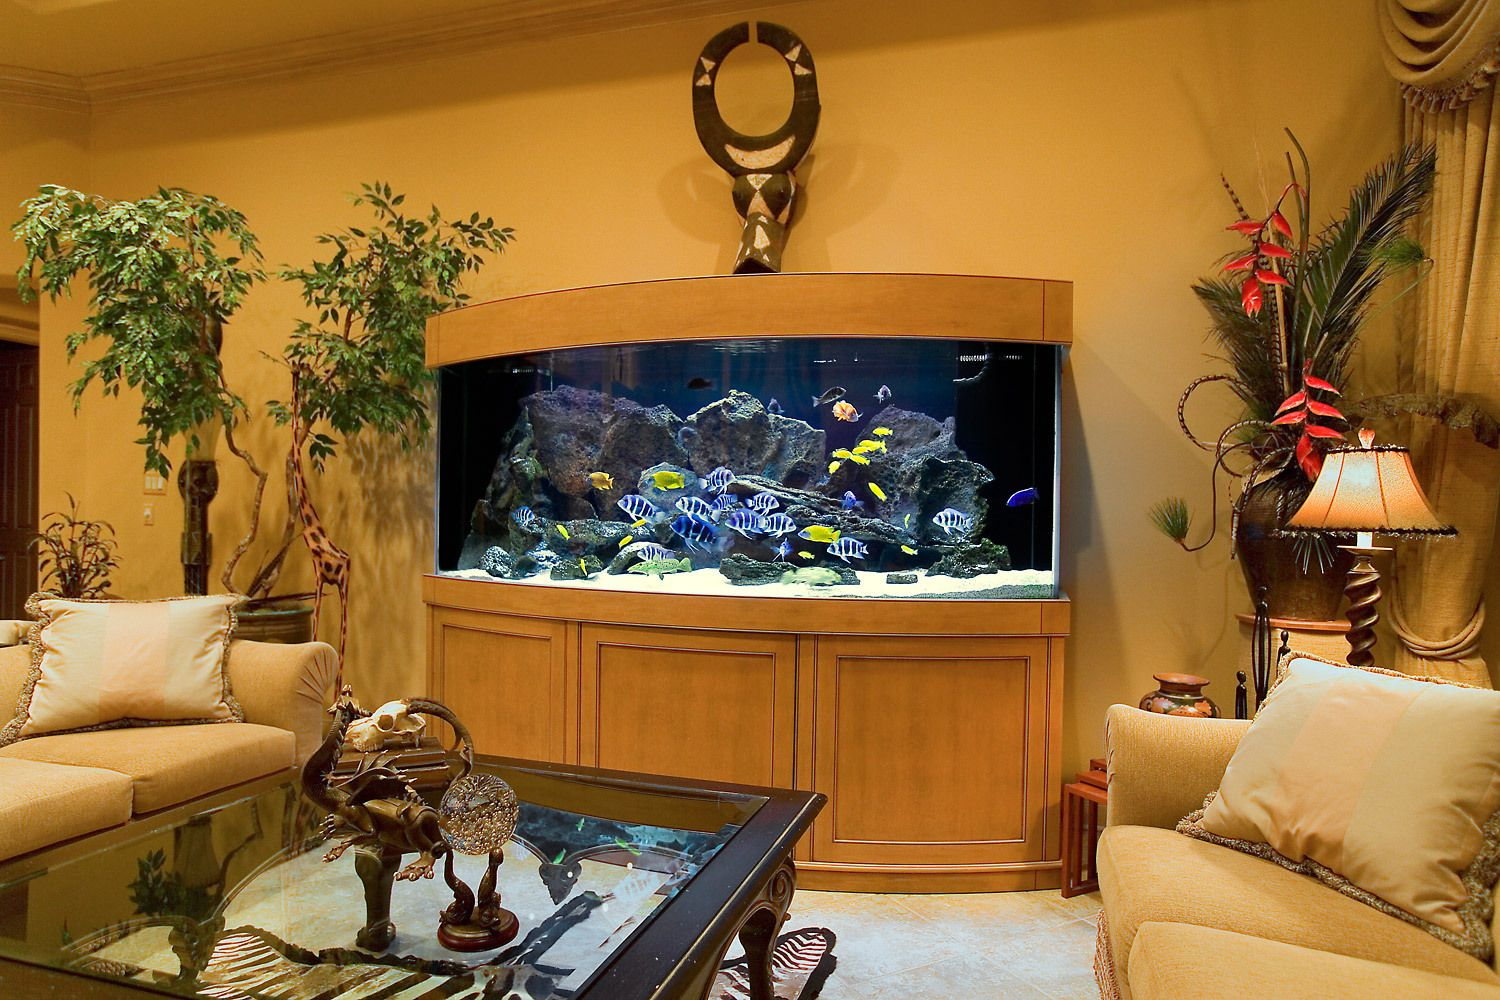 A Custom Aquarium Installation for an Eclectic Interior